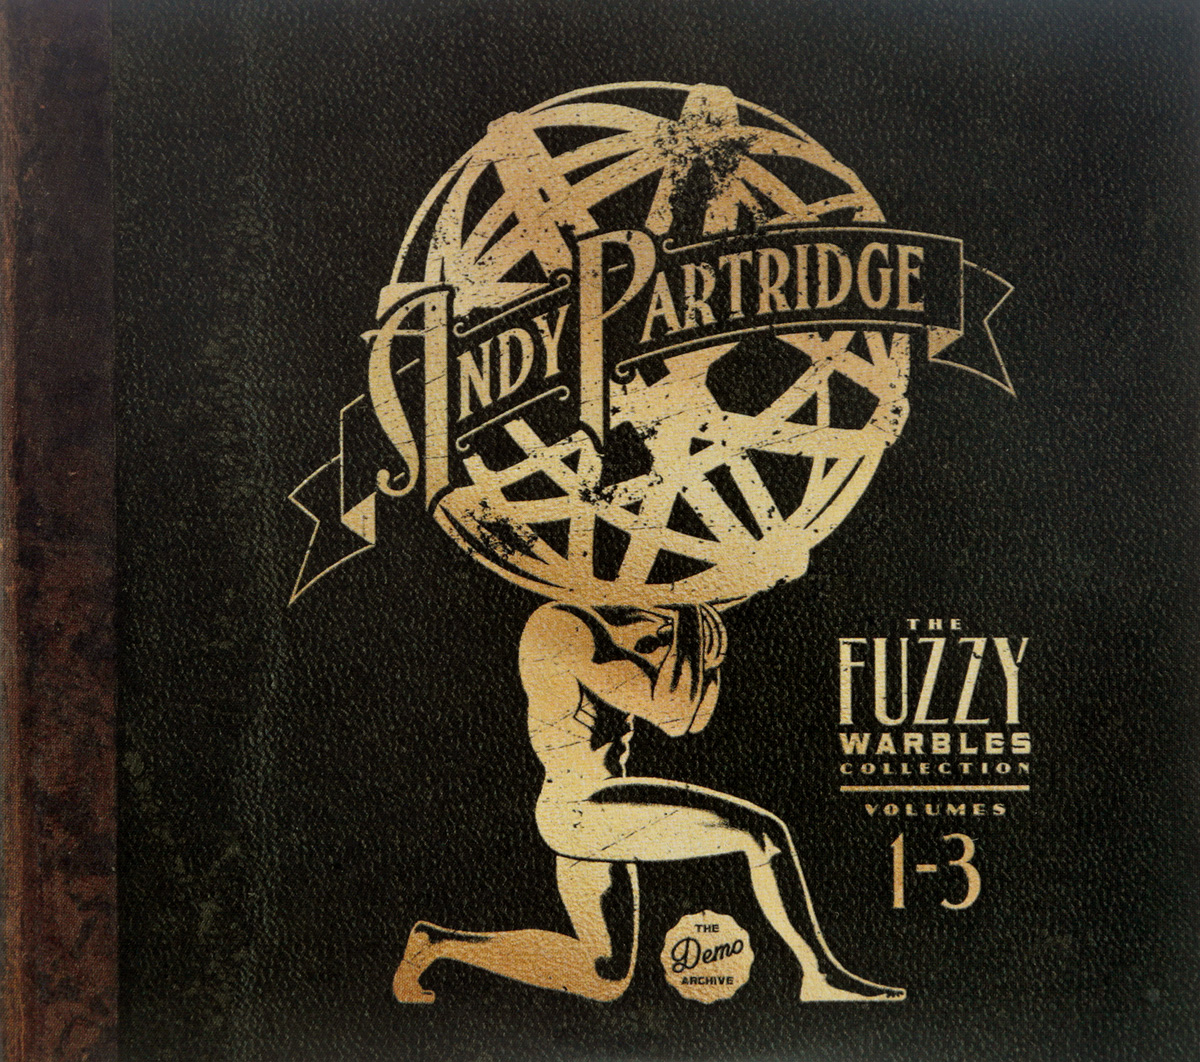 Andrew John Andy Partridge Andy Partridge. Fuzzy Warbles Volume 1-3 (3 CD) andrew john andy partridge andy partridge powers